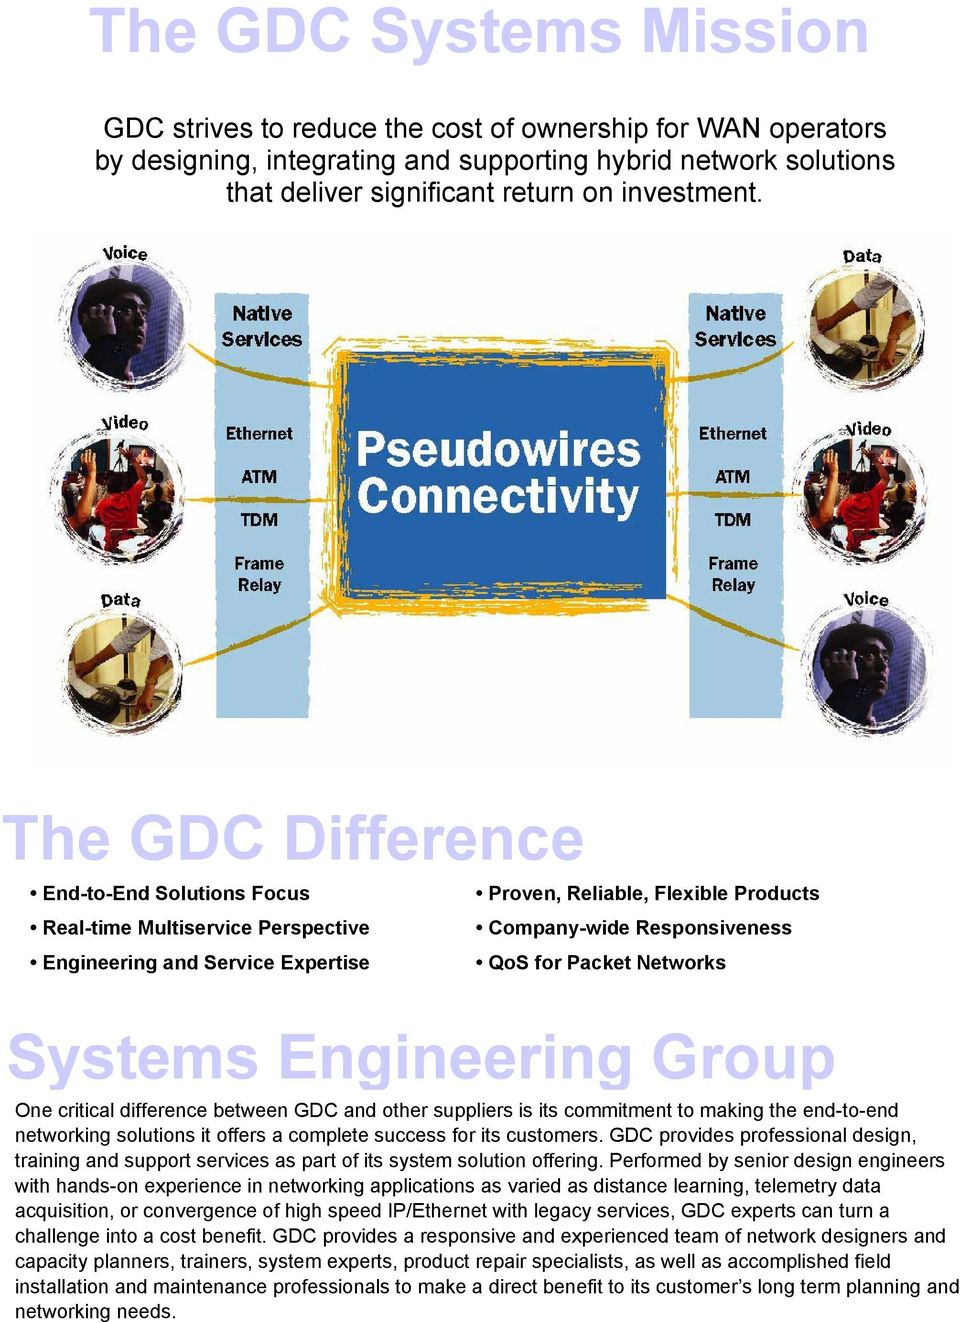 Networks Systems Engineering Group One critical difference between GDC and other suppliers is its commitment to making the end-to-end networking solutions it offers a complete success for its